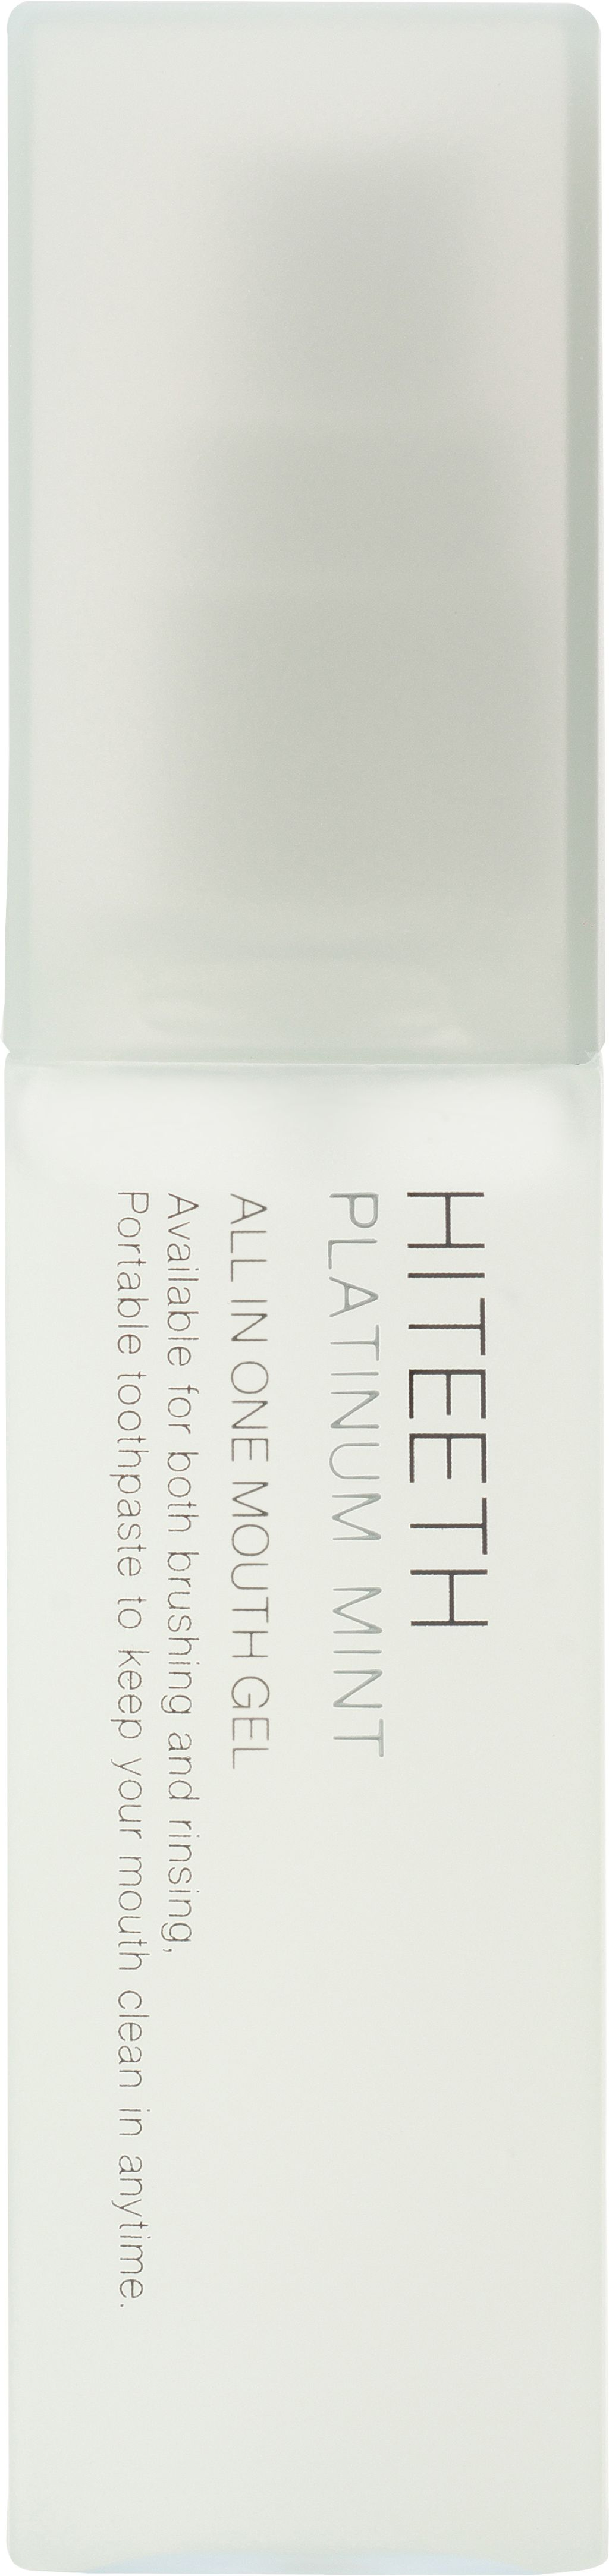 HITEETH ALL IN ONE MOUTH GELPLATINUM MINT